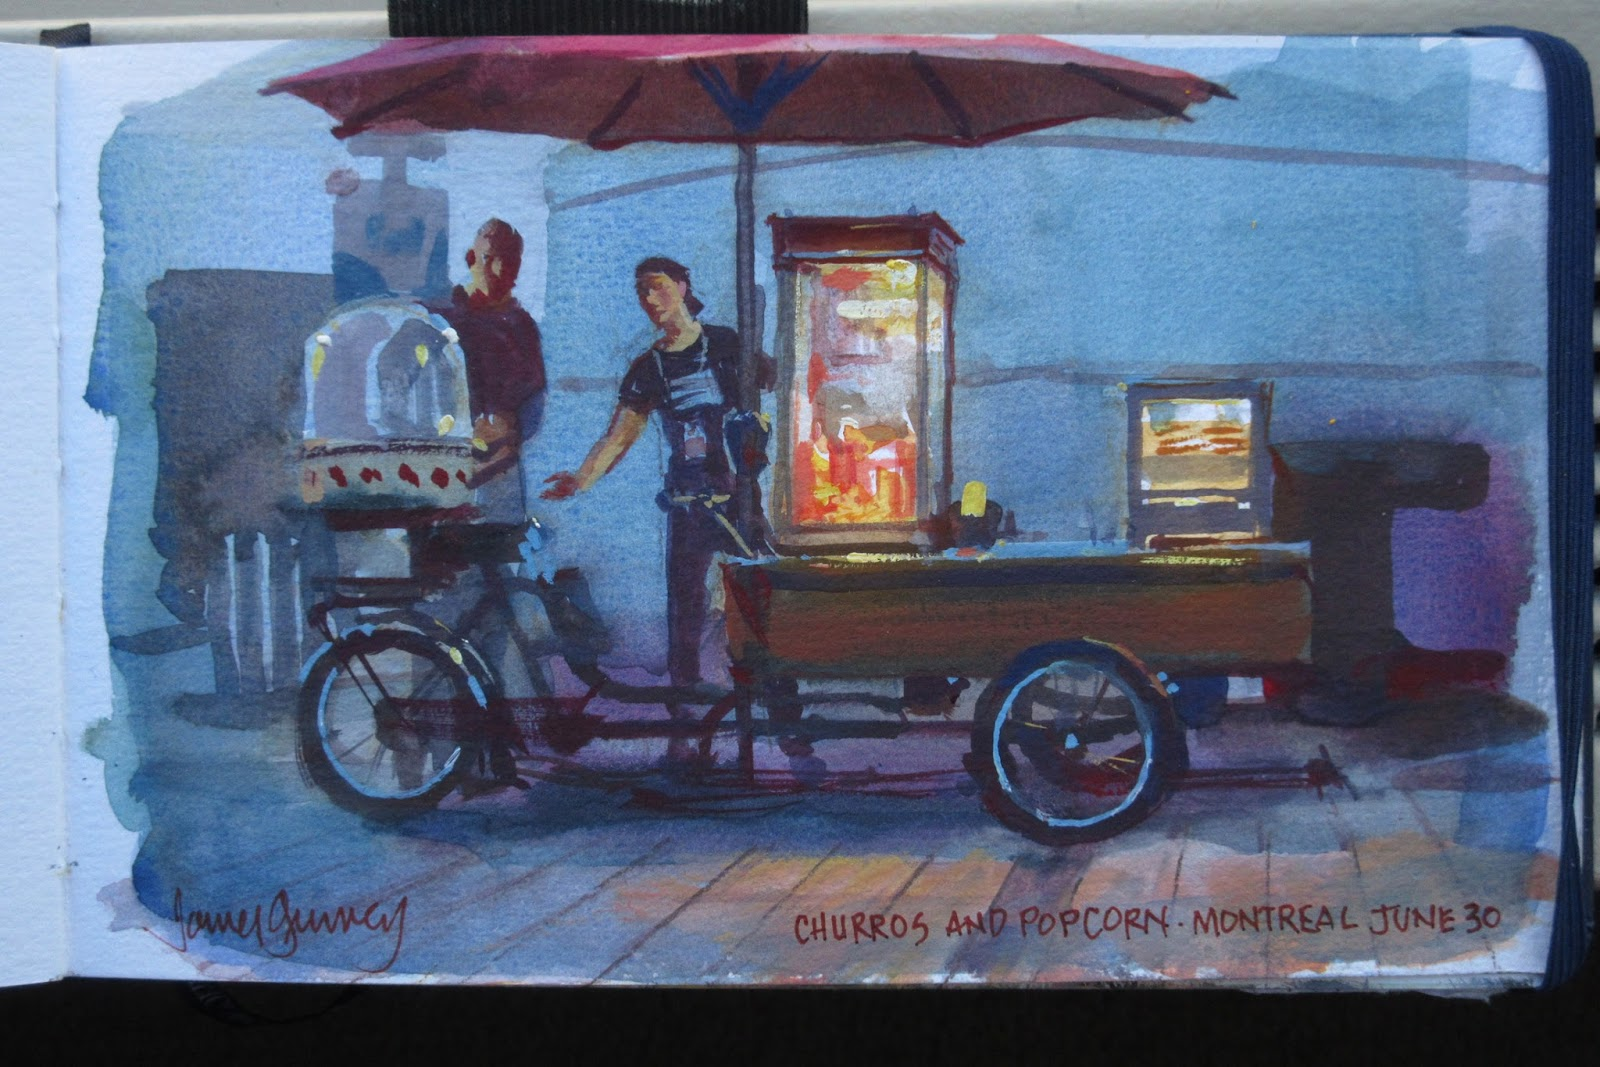 Food Vendor Painting Challenge